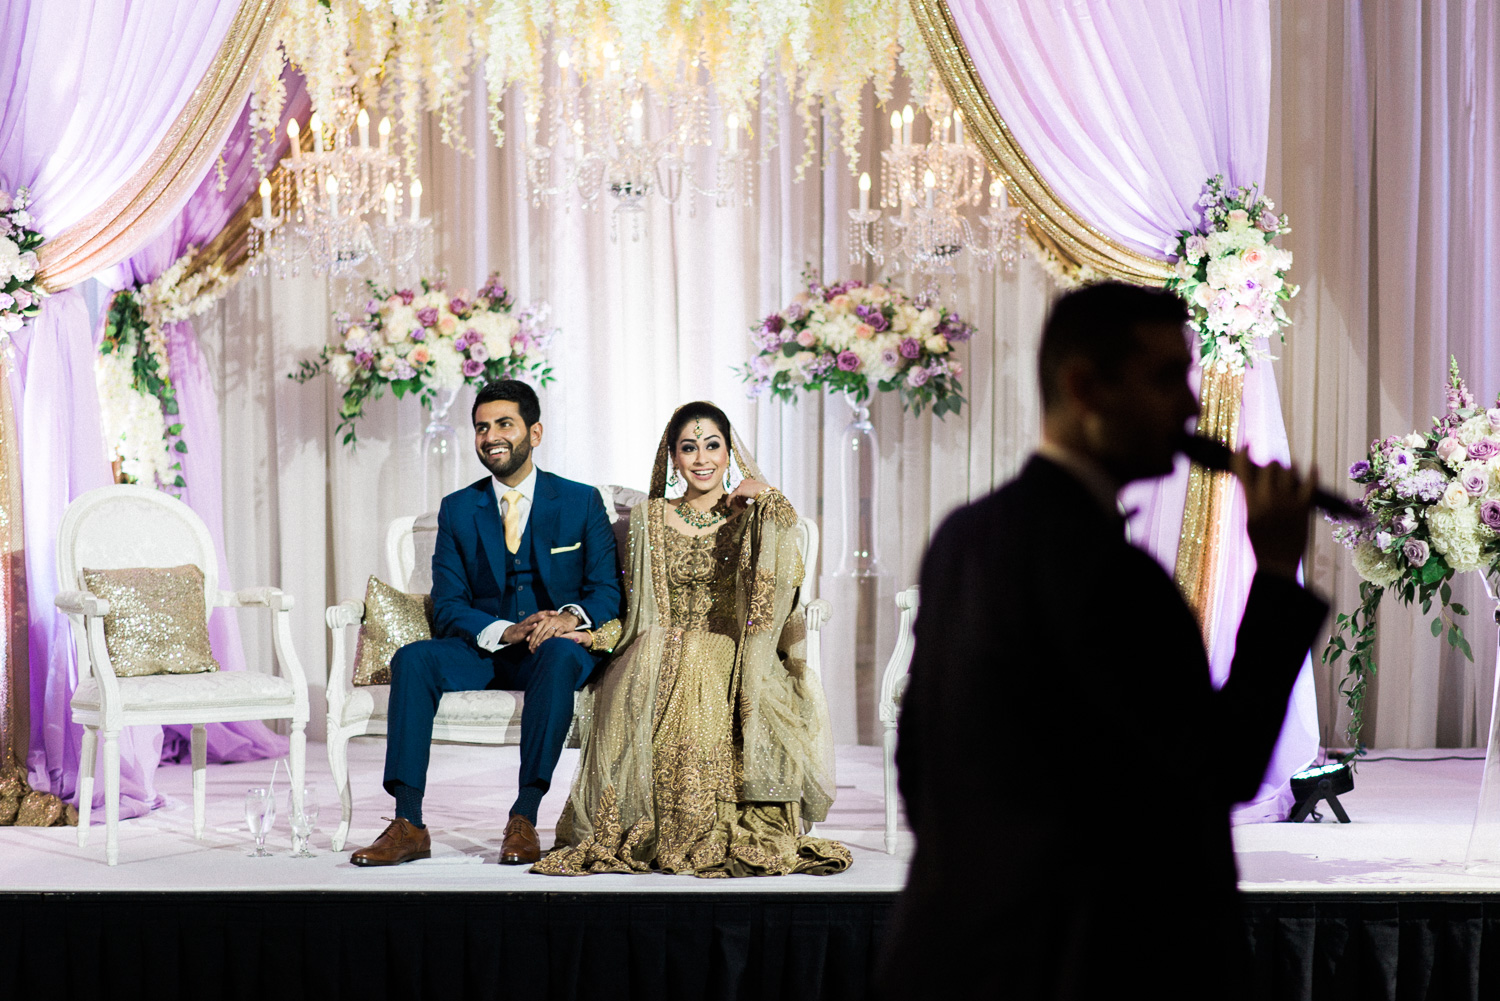 maha_salman_copper_creek_wedding-34.jpg